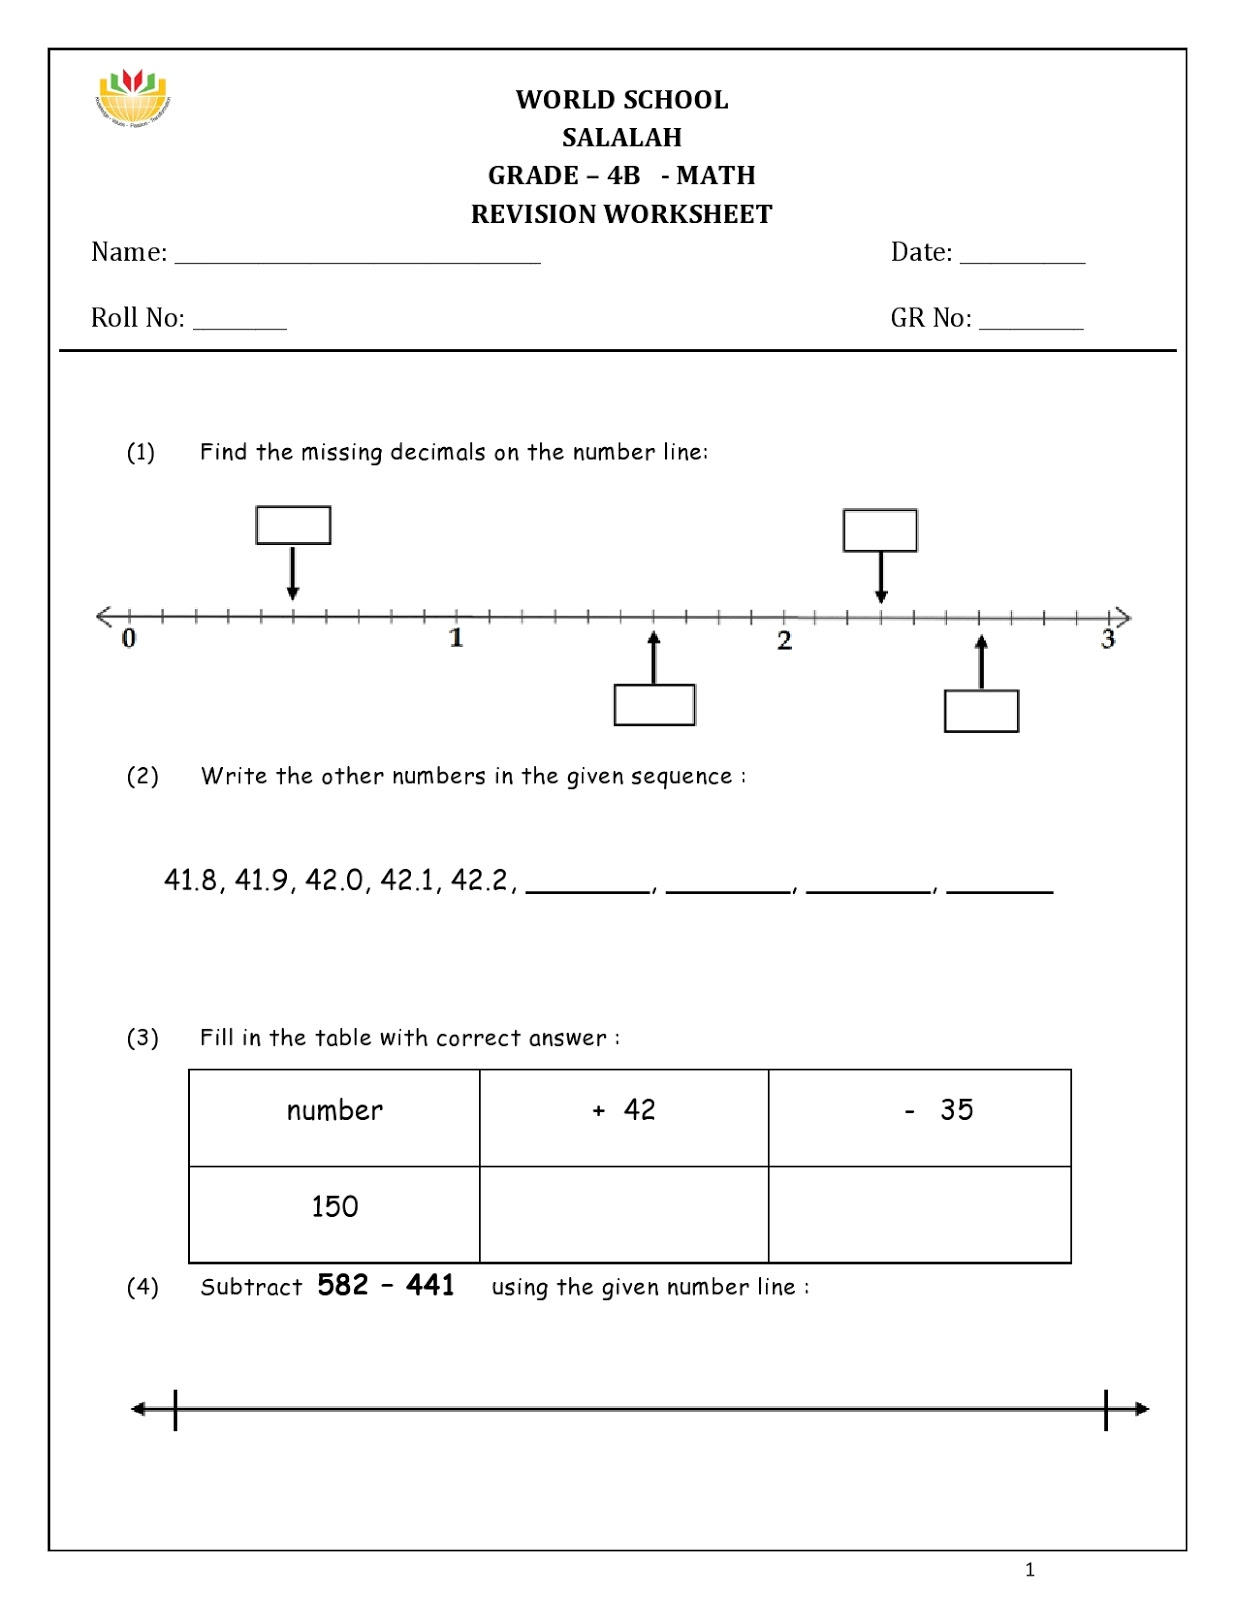 Birla World School Oman Homework For Grade 4 As On 07 12